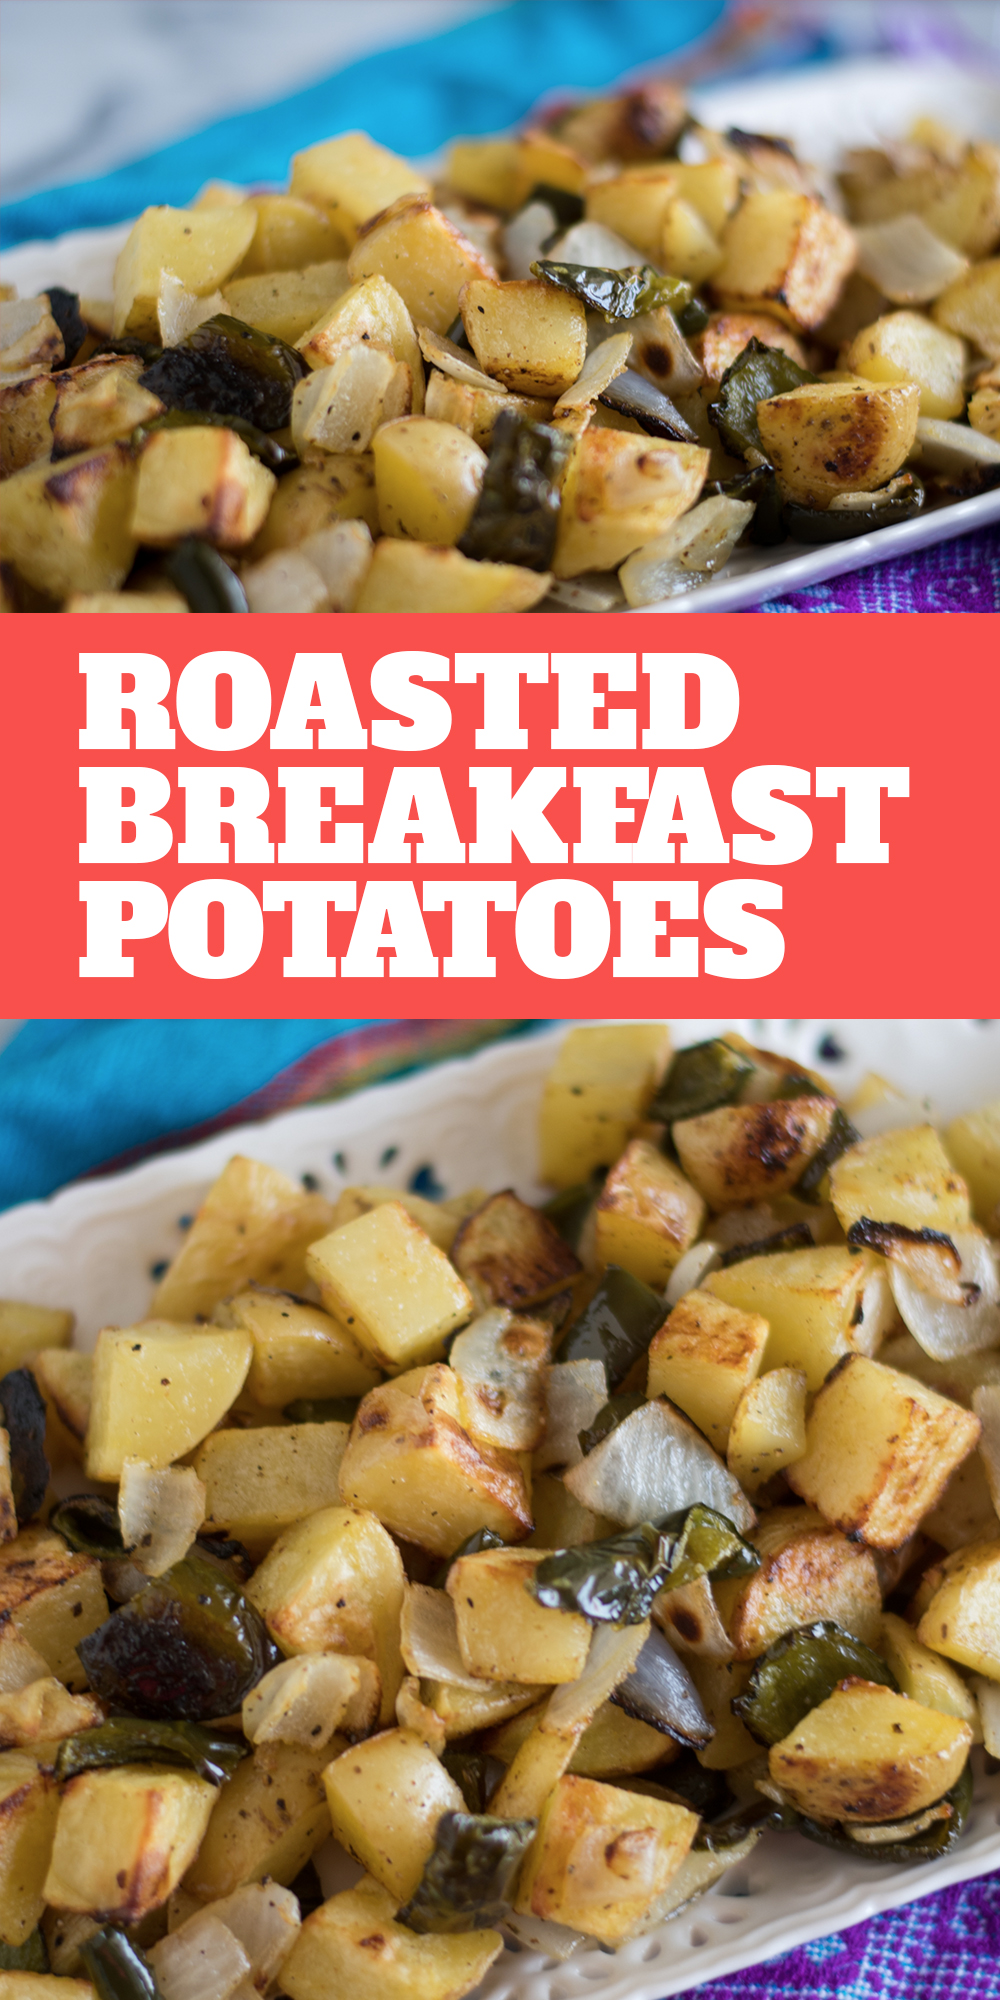 Roasted Breakfast Potatoes are the perfect accompaniment on your breakfast plate! #breakfast #potatoes #brunch #side #easy #vegan #glutenfree